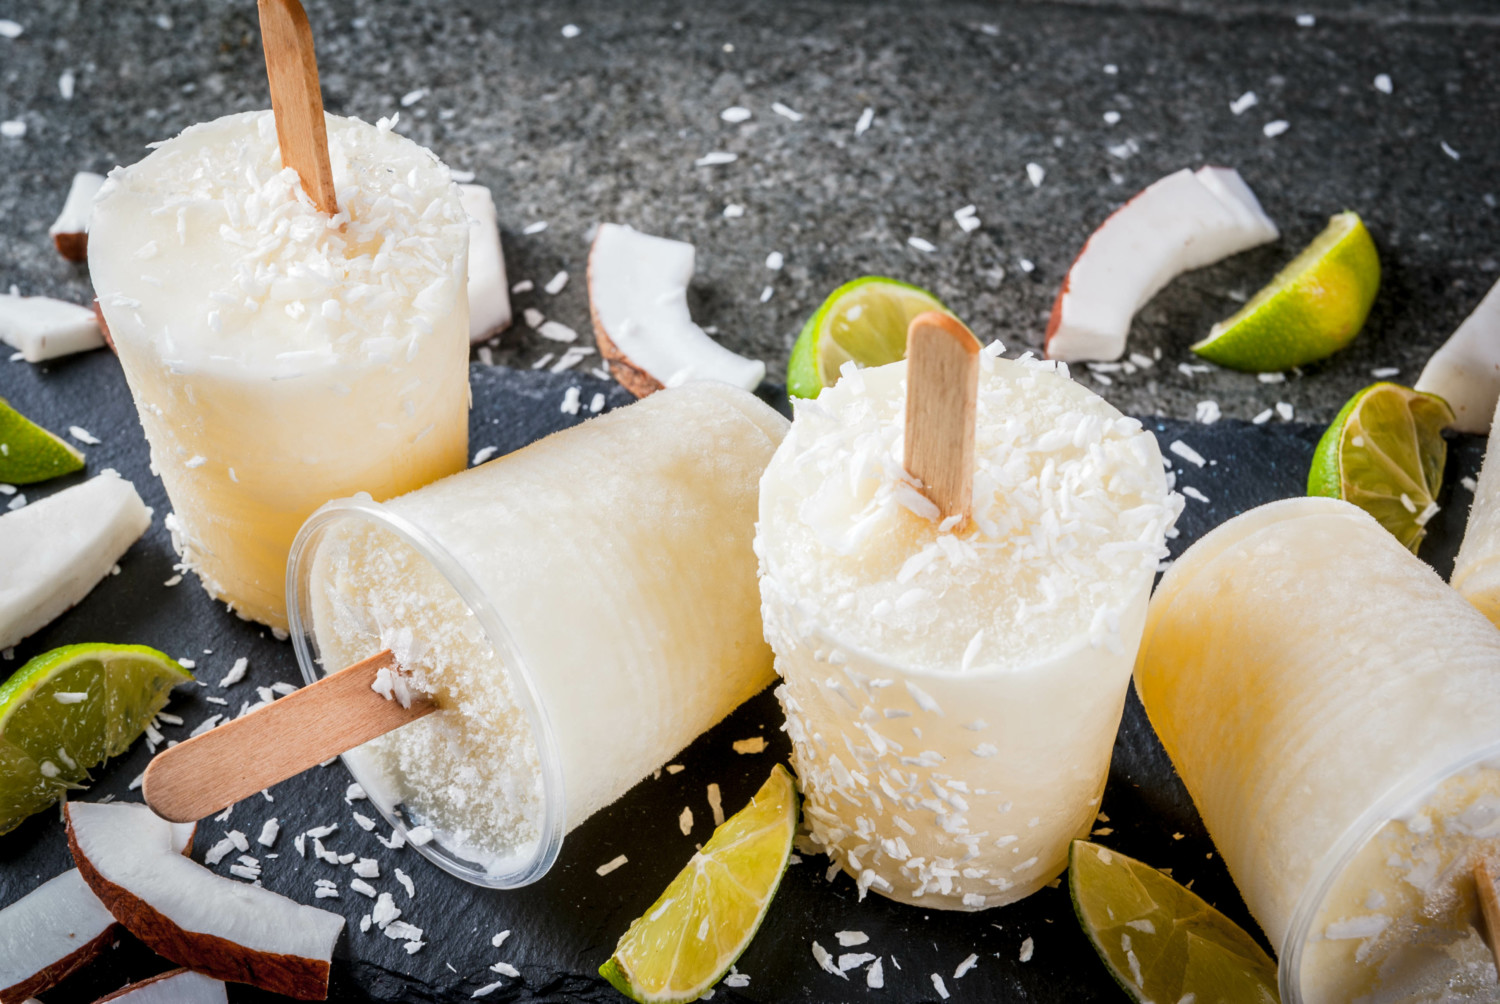 Malibu Rum Popsicles Make The Most Refreshing Summer Treat